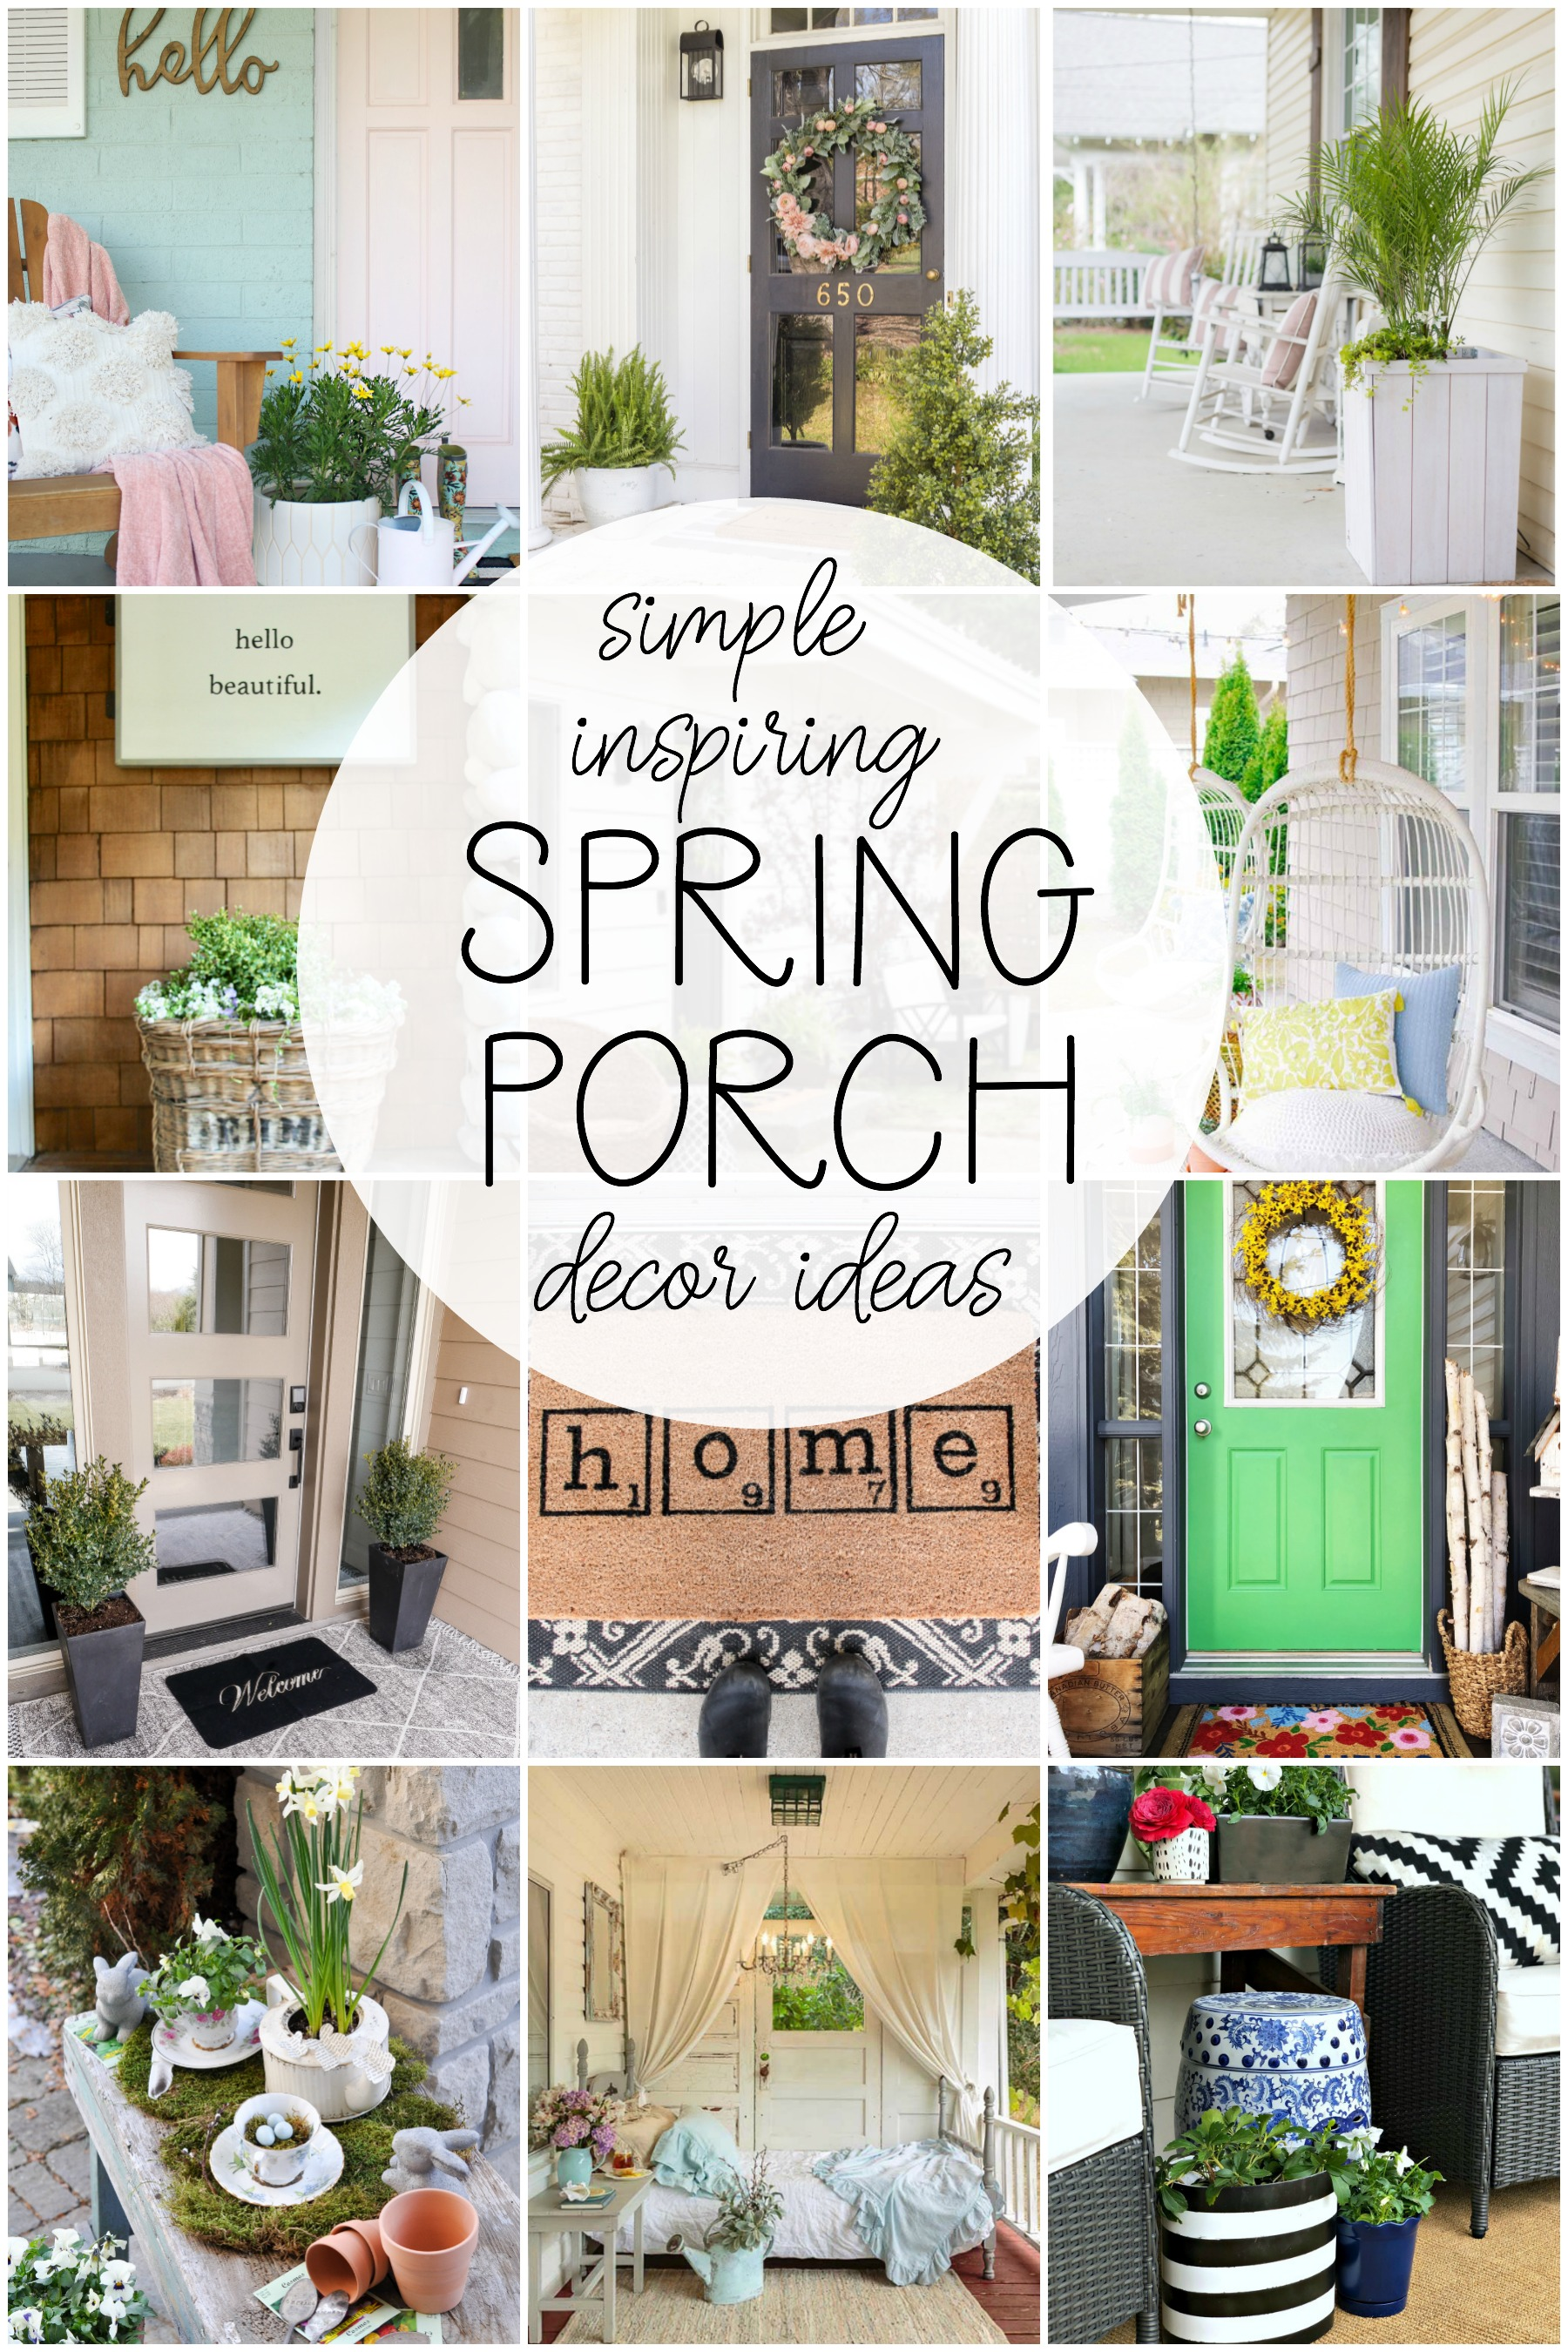 spring porch decor ideas via @modernglamhome